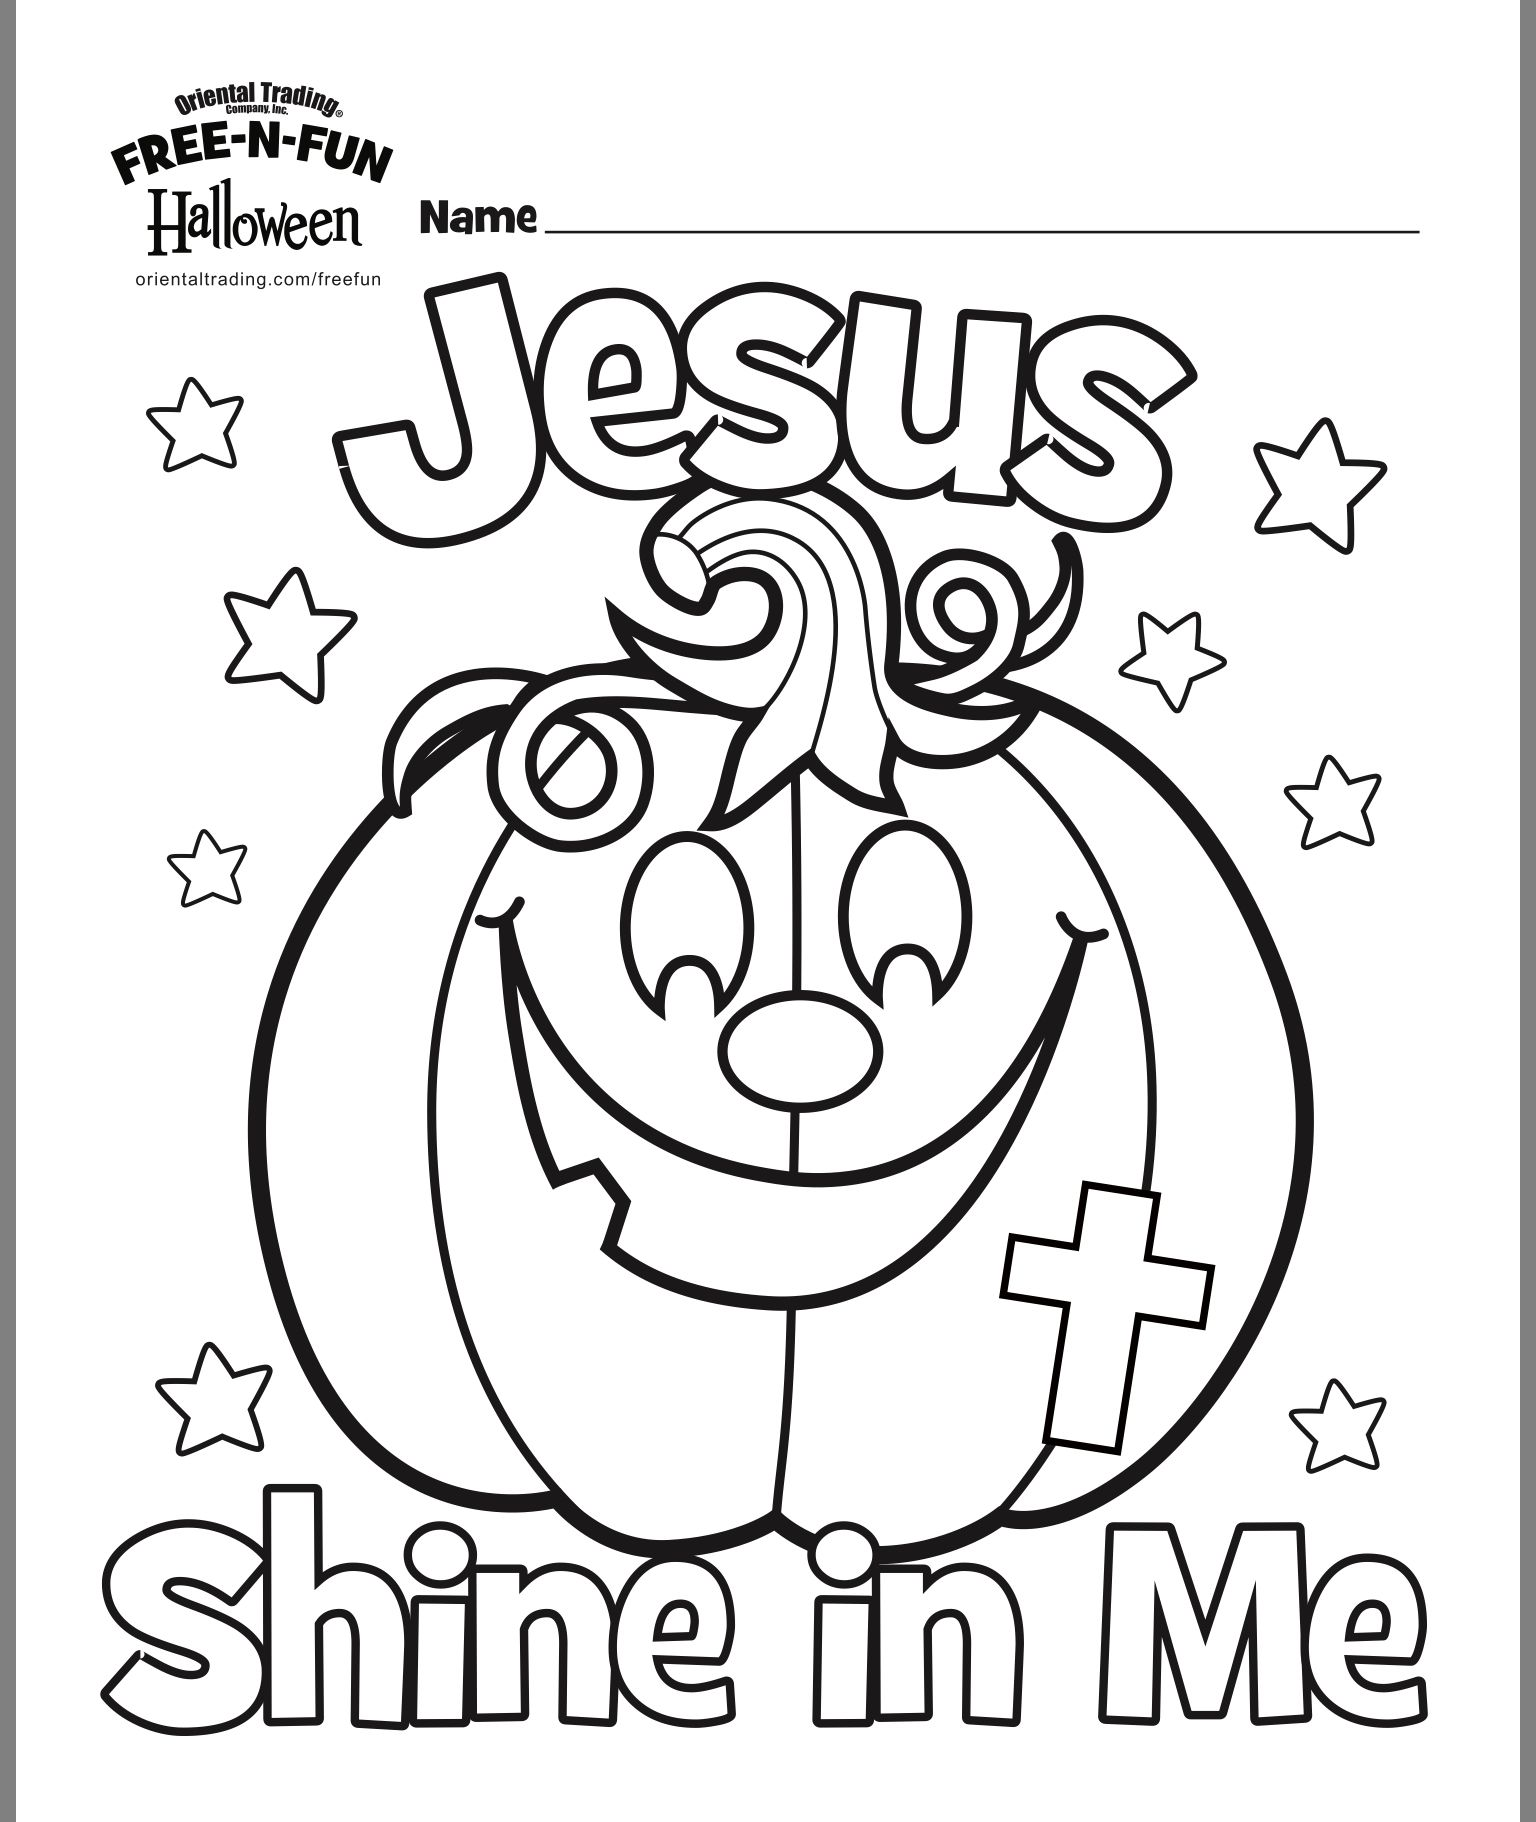 Pin By Louise Swaine On Free Printables Halloween Coloring Pages Sunday School Preschool Sunday School Crafts